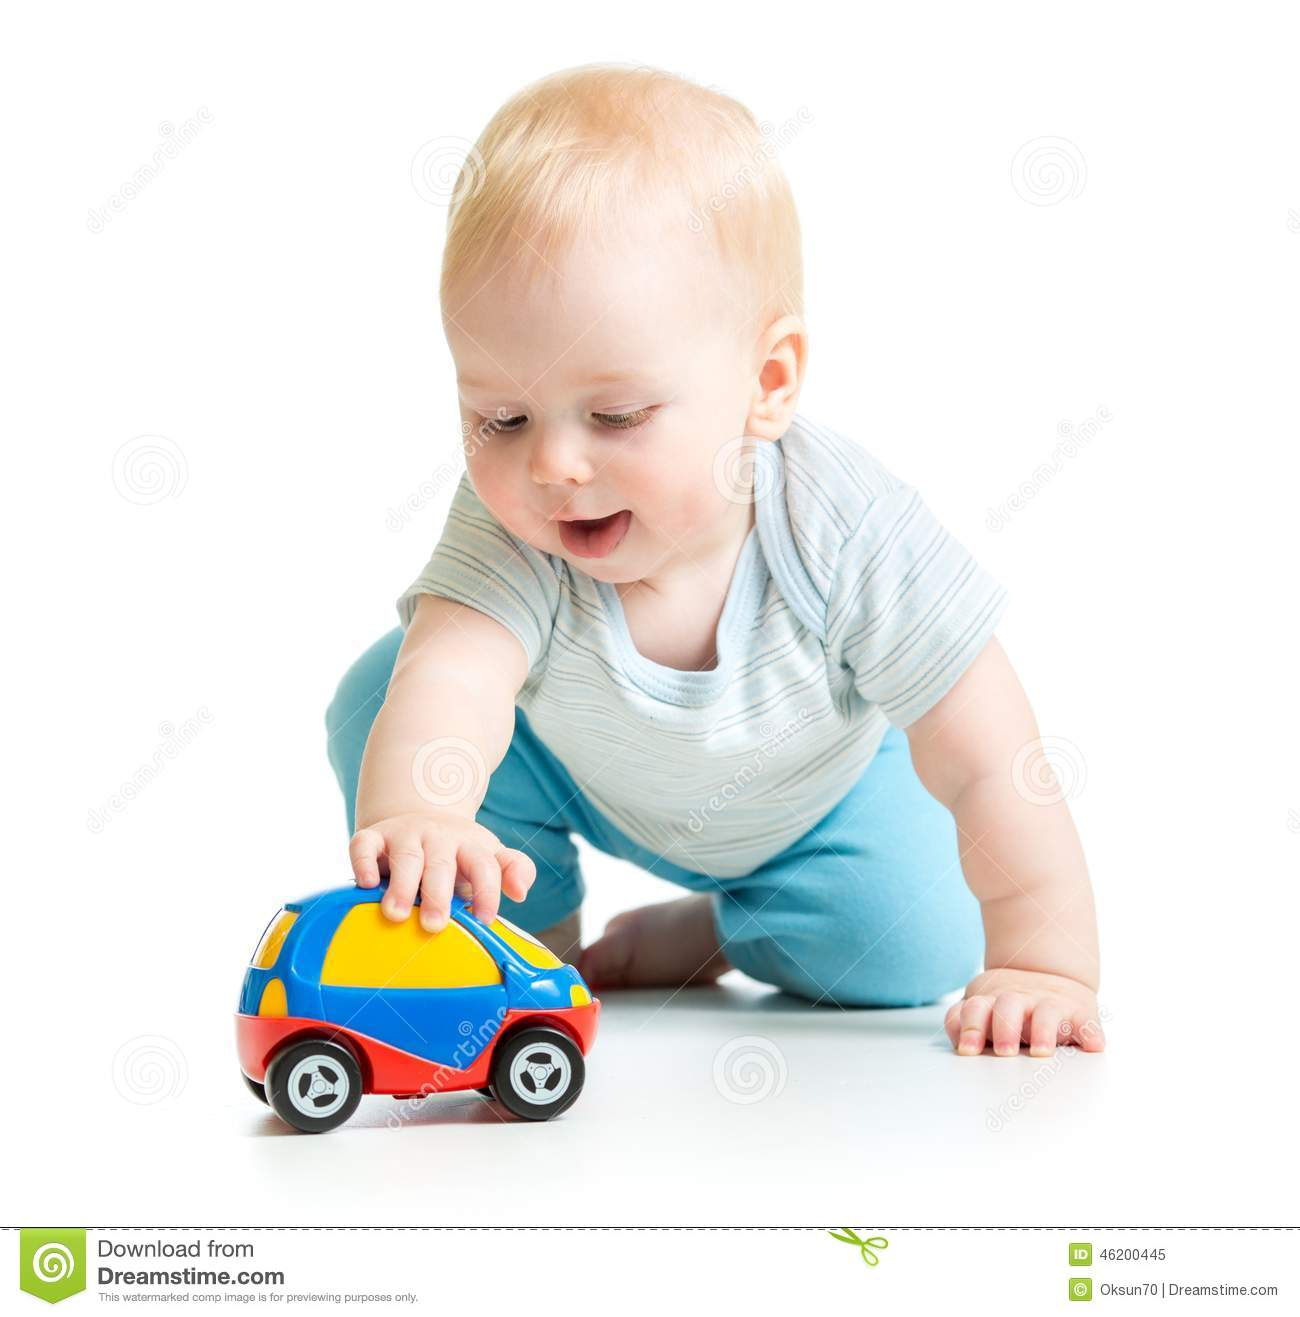 enfant en bas ge de b b gar on jouant avec la voiture de jouet photo stock image 46200445. Black Bedroom Furniture Sets. Home Design Ideas